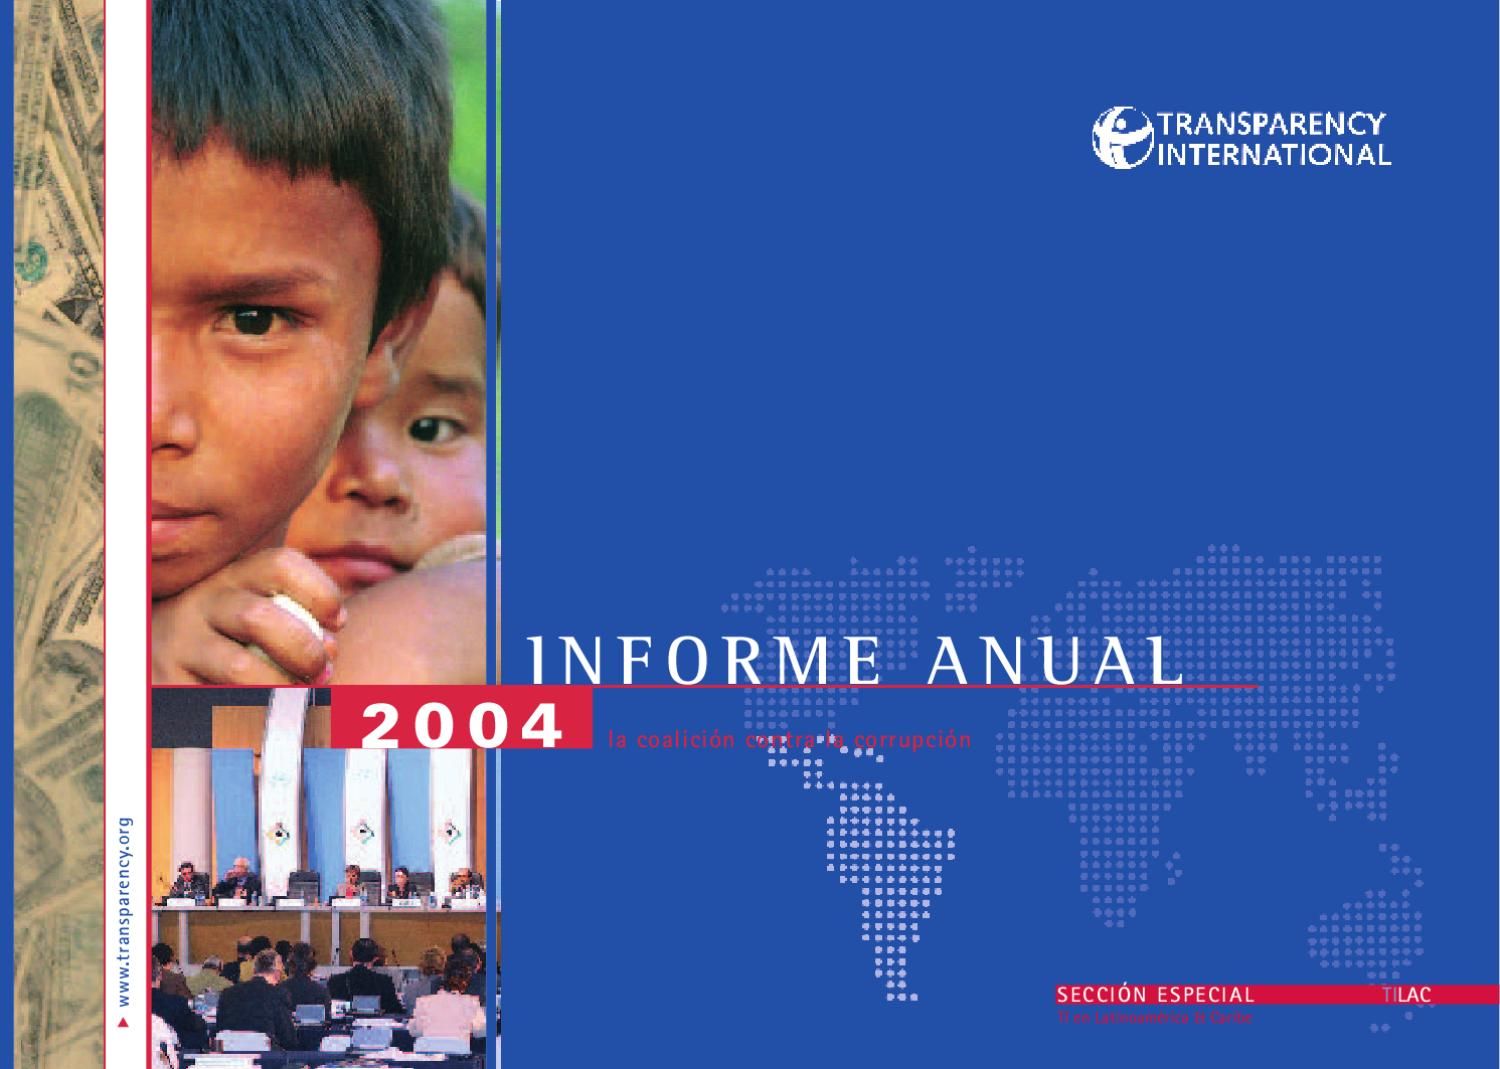 Informe Anual 2004 By Transparency International Issuu